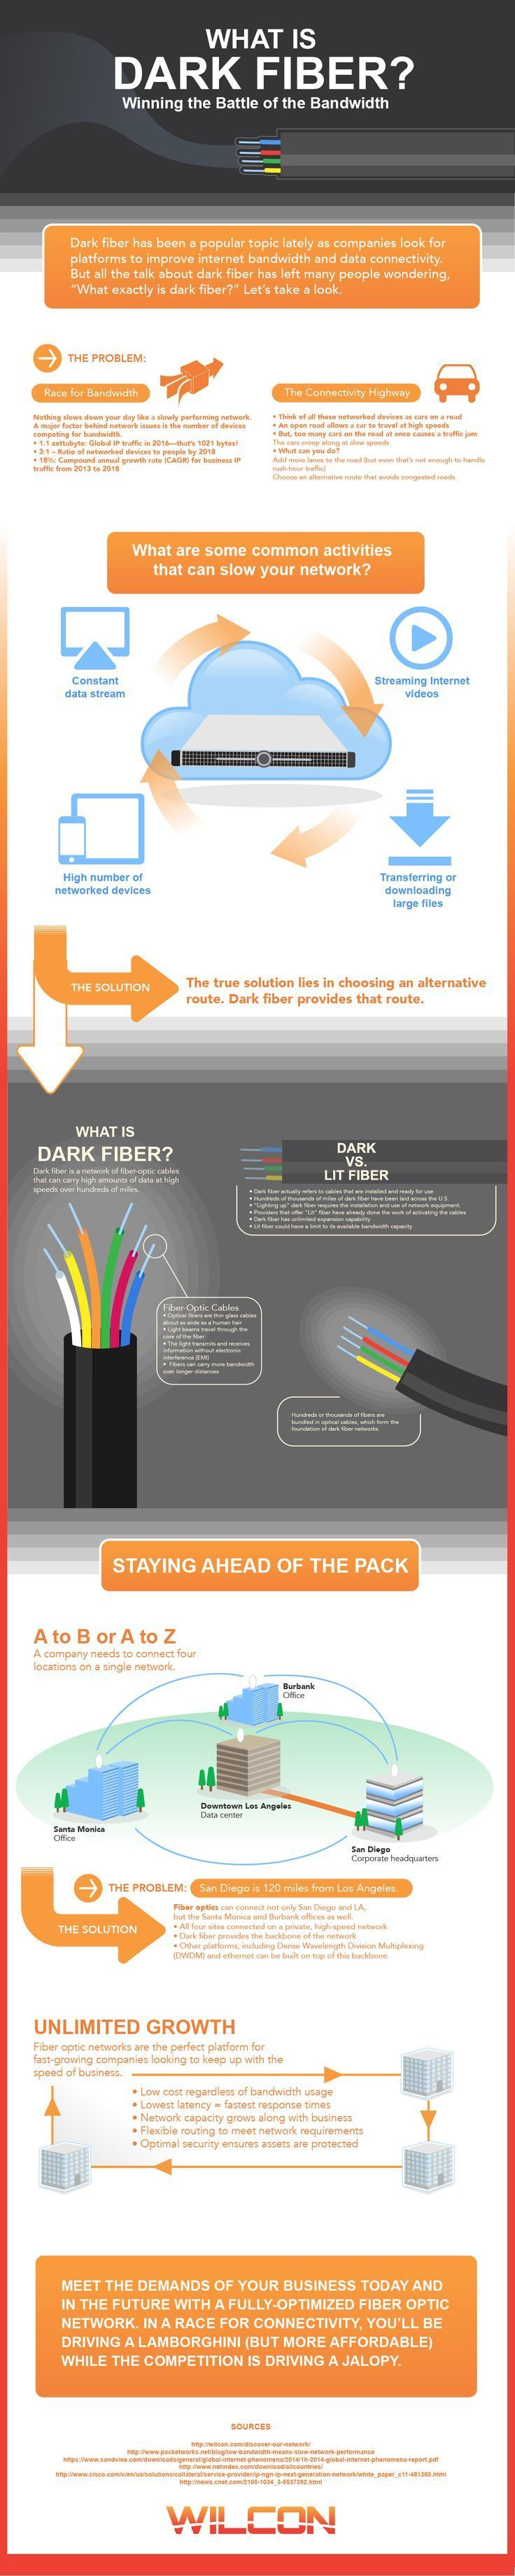 What Is Dark Fiber Winning The Battle Of Bandwidth Infographic Optics Diagram Optical Link Latest Technology To Be Developed For Communication Data Over Long Distances Optic Cables These Highly Advanced Use Beams Light